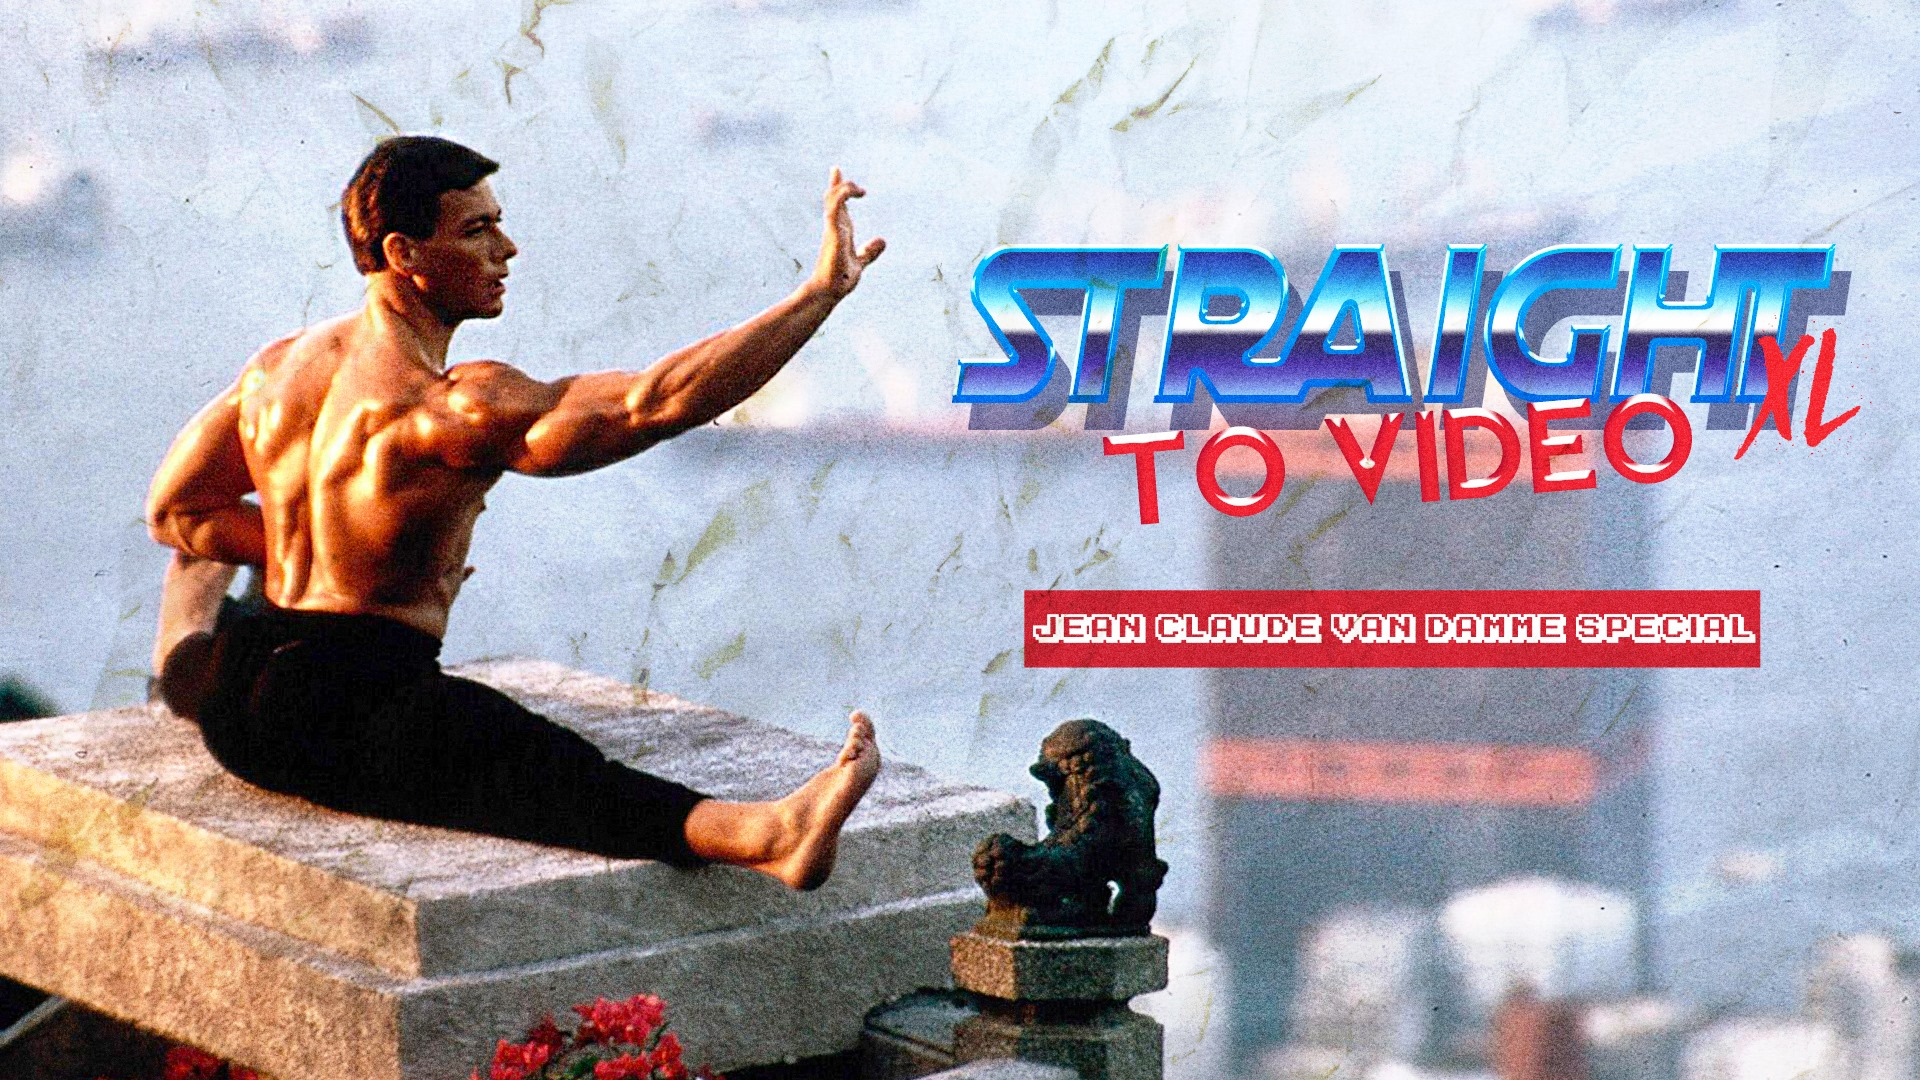 Straight to Video XL: Jean-Claude van Damme